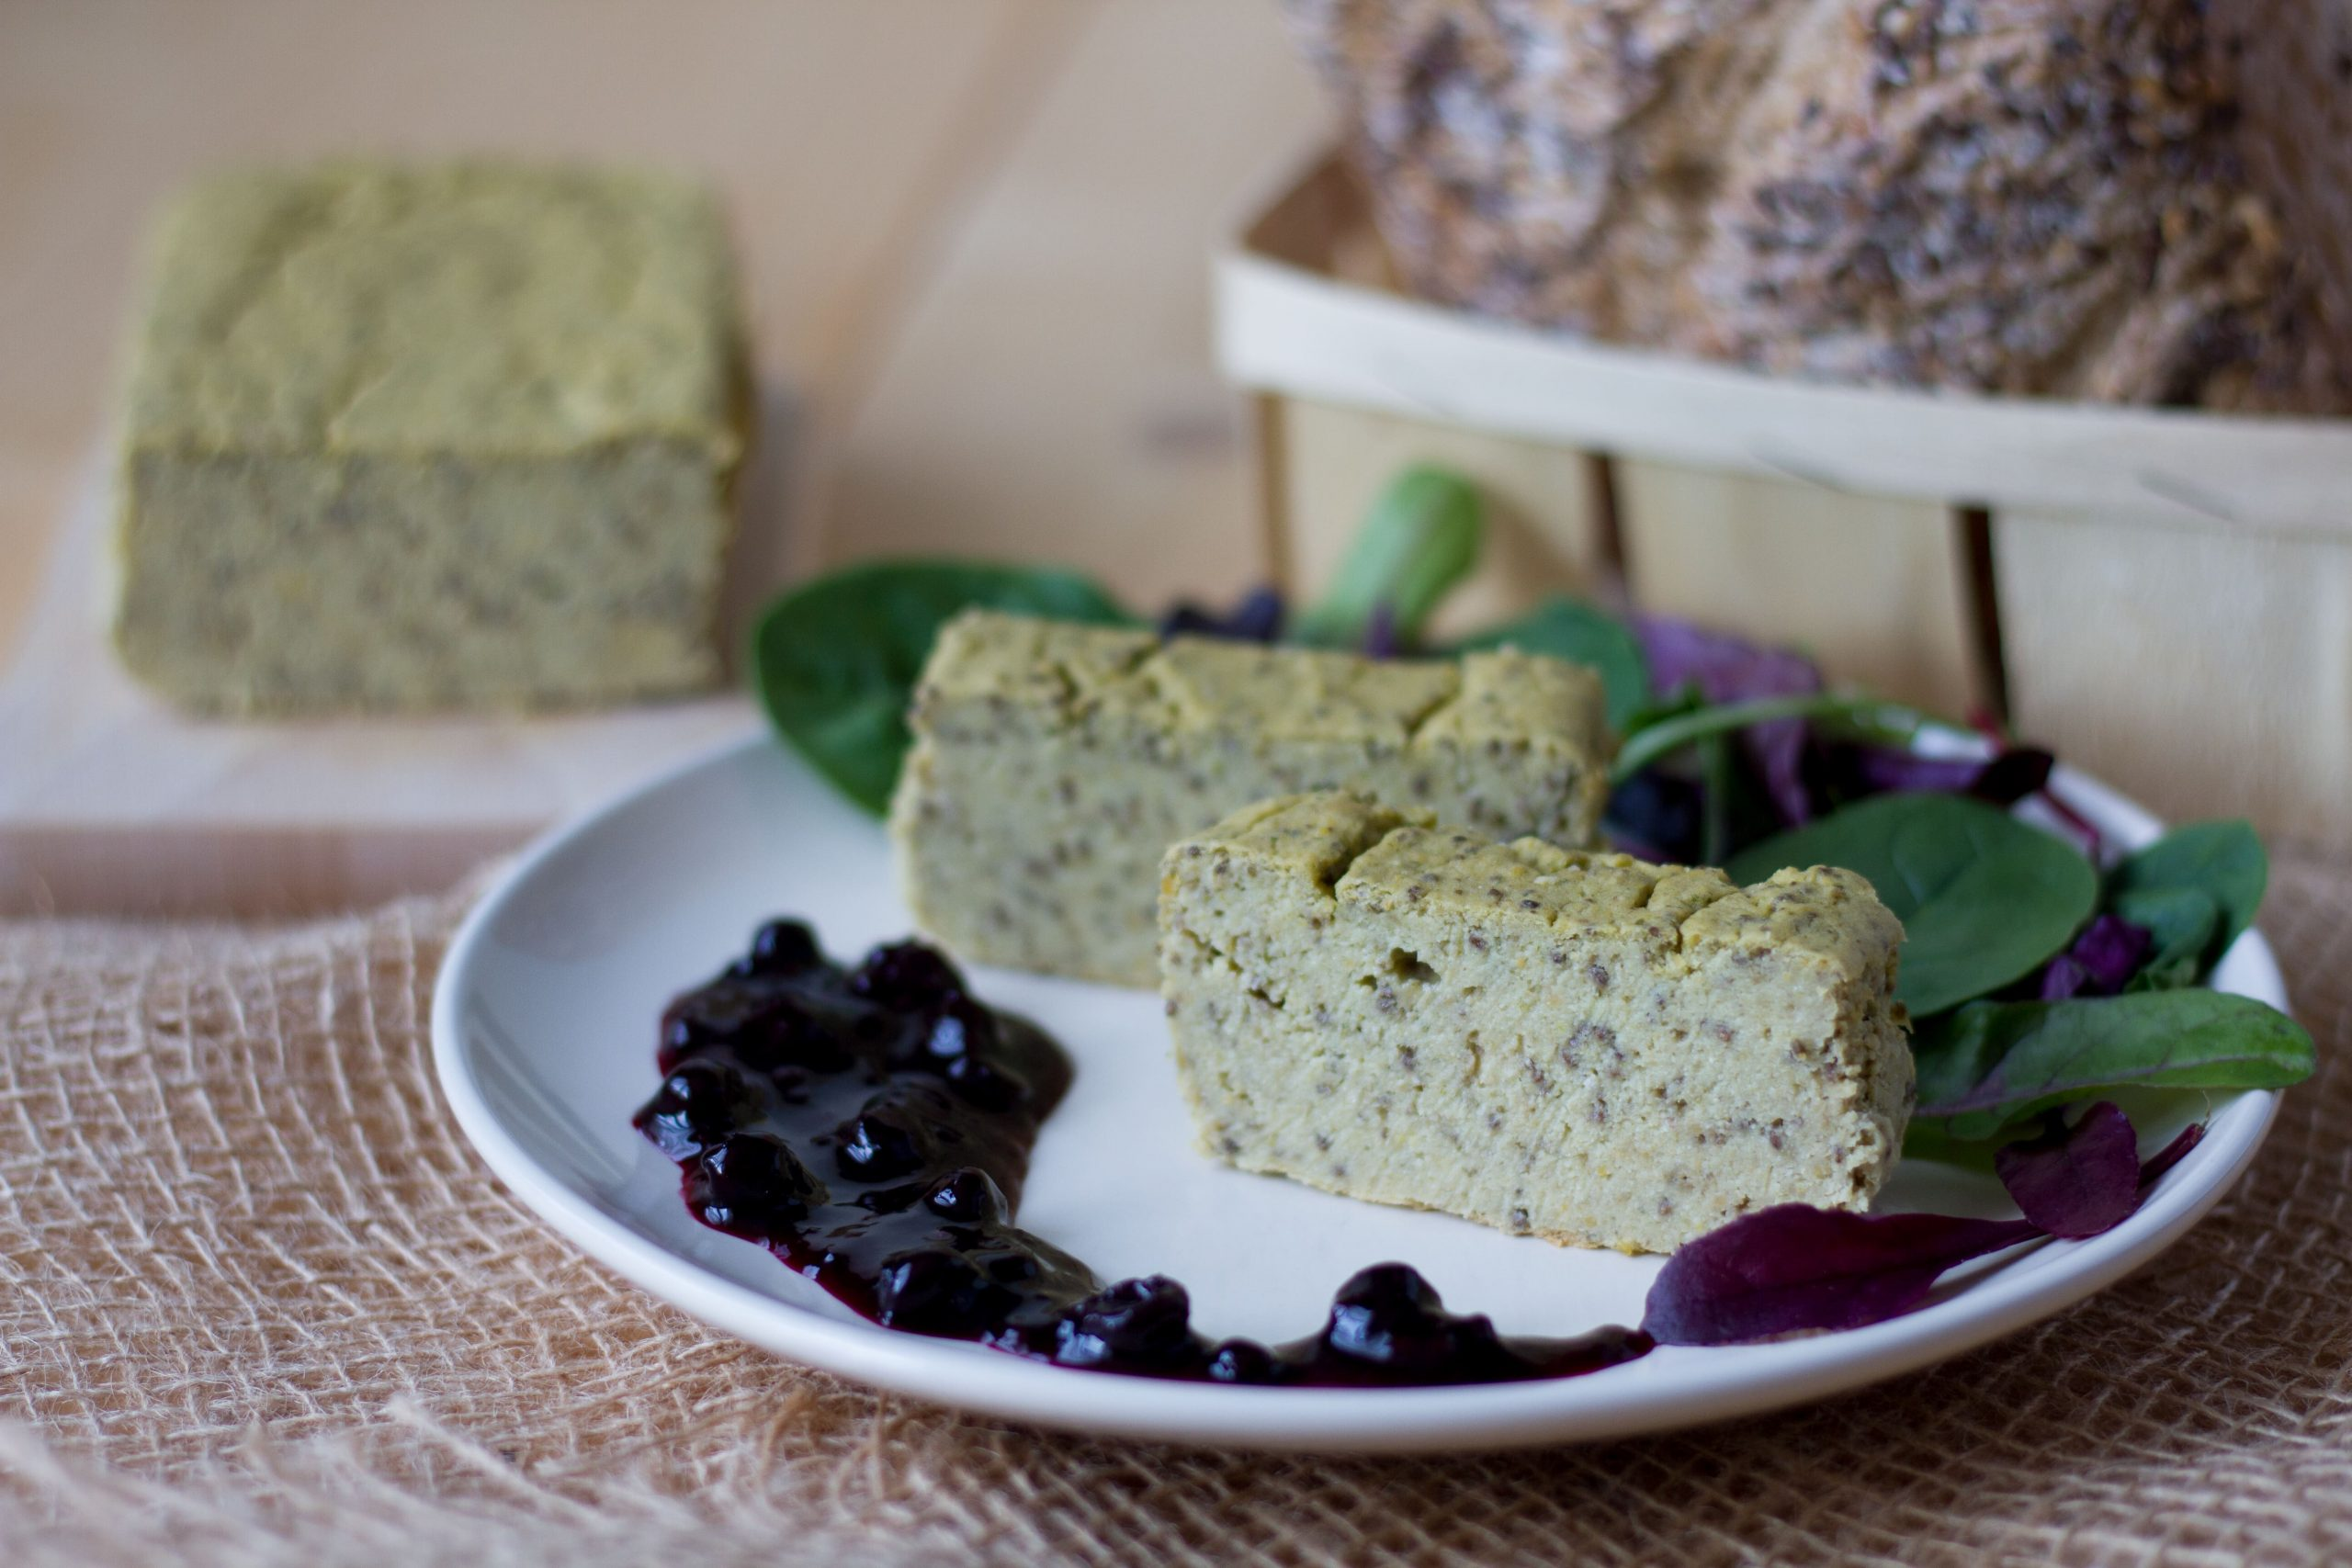 Butter bean pate with cashew nuts